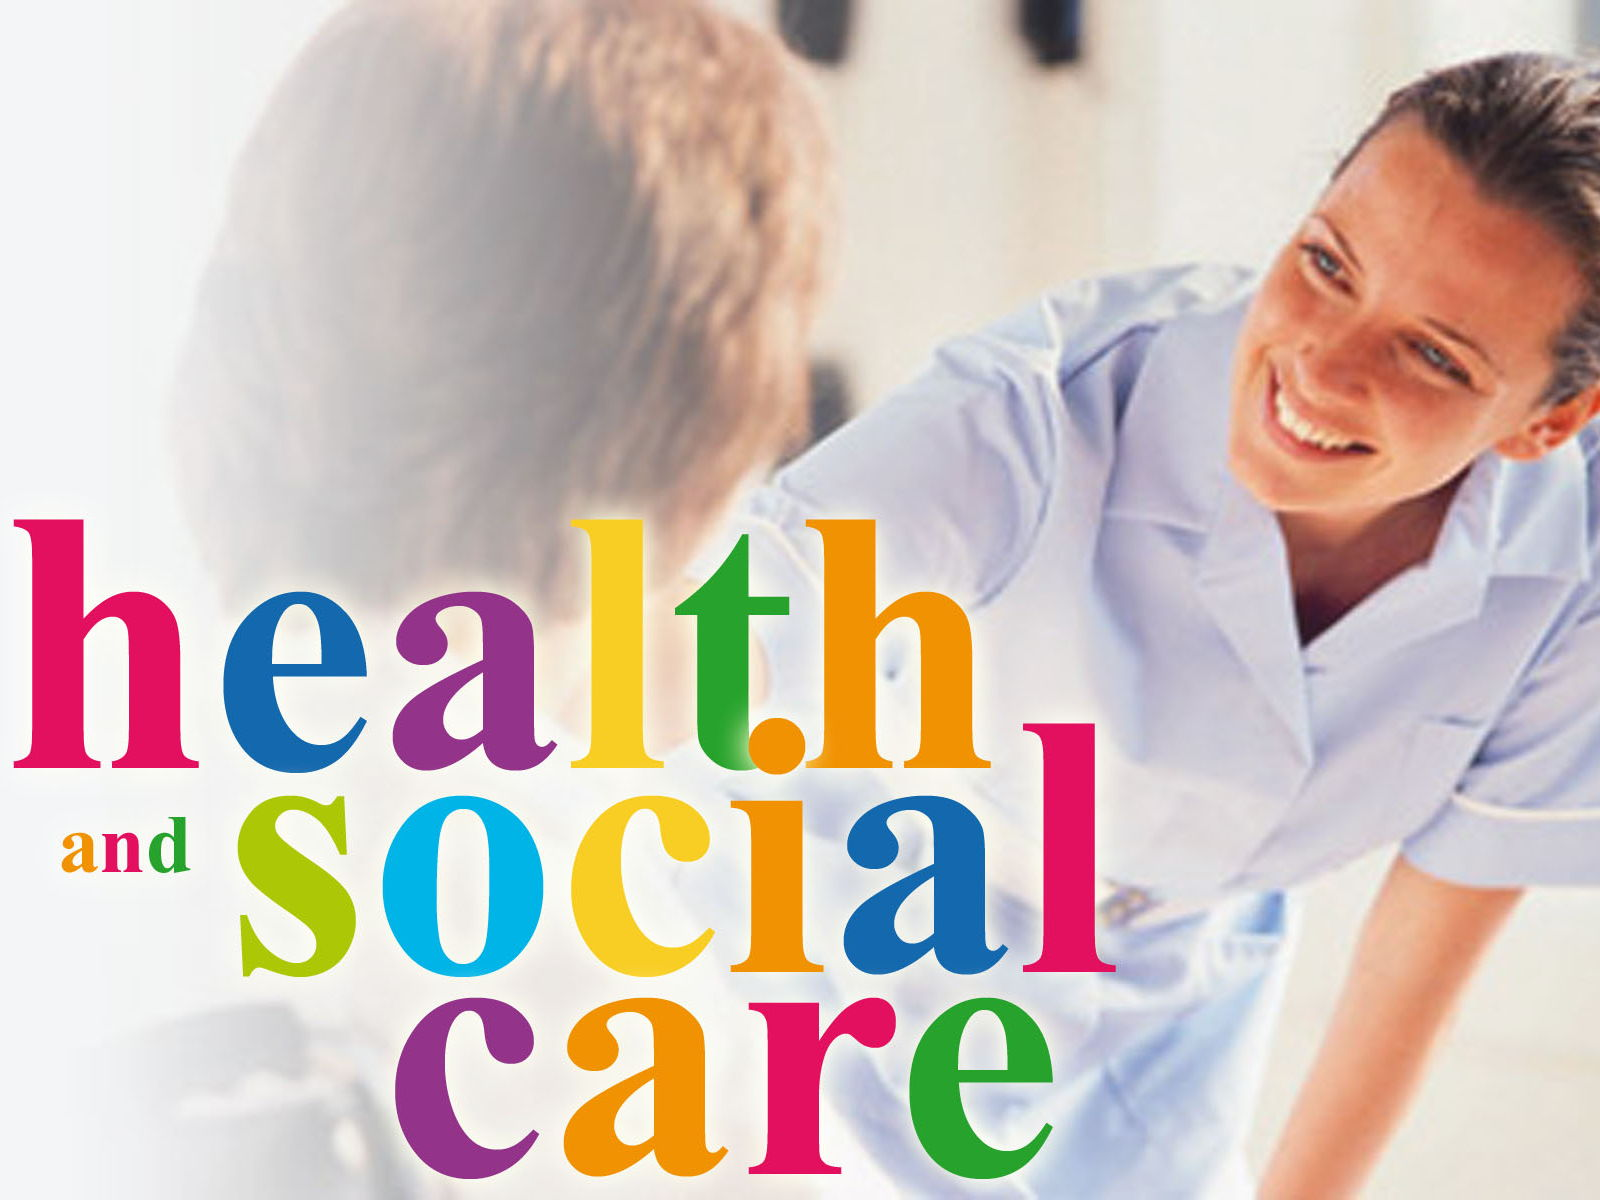 health and social care assignment essay Open document below is an essay on health and social care level 3 assignment 303 task a from anti essays, your source for research papers, essays, and term paper examples.